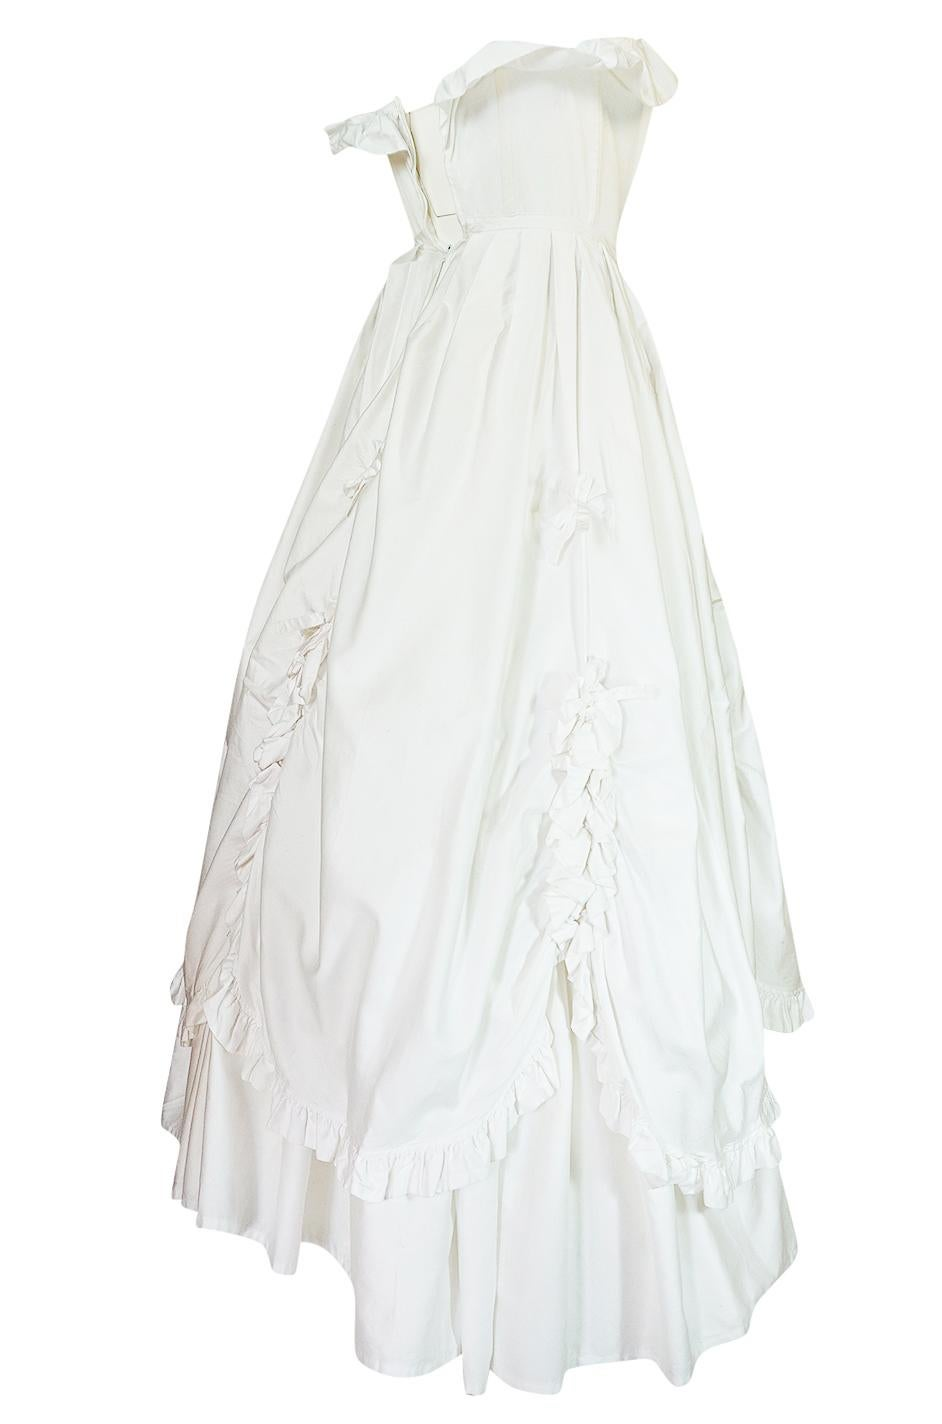 1985 laura ashley crisp white cotton strapless bow dress for sale at Christmas Evening Dresses 1985 laura ashley crisp white cotton strapless bow dress for sale at 1stdibs